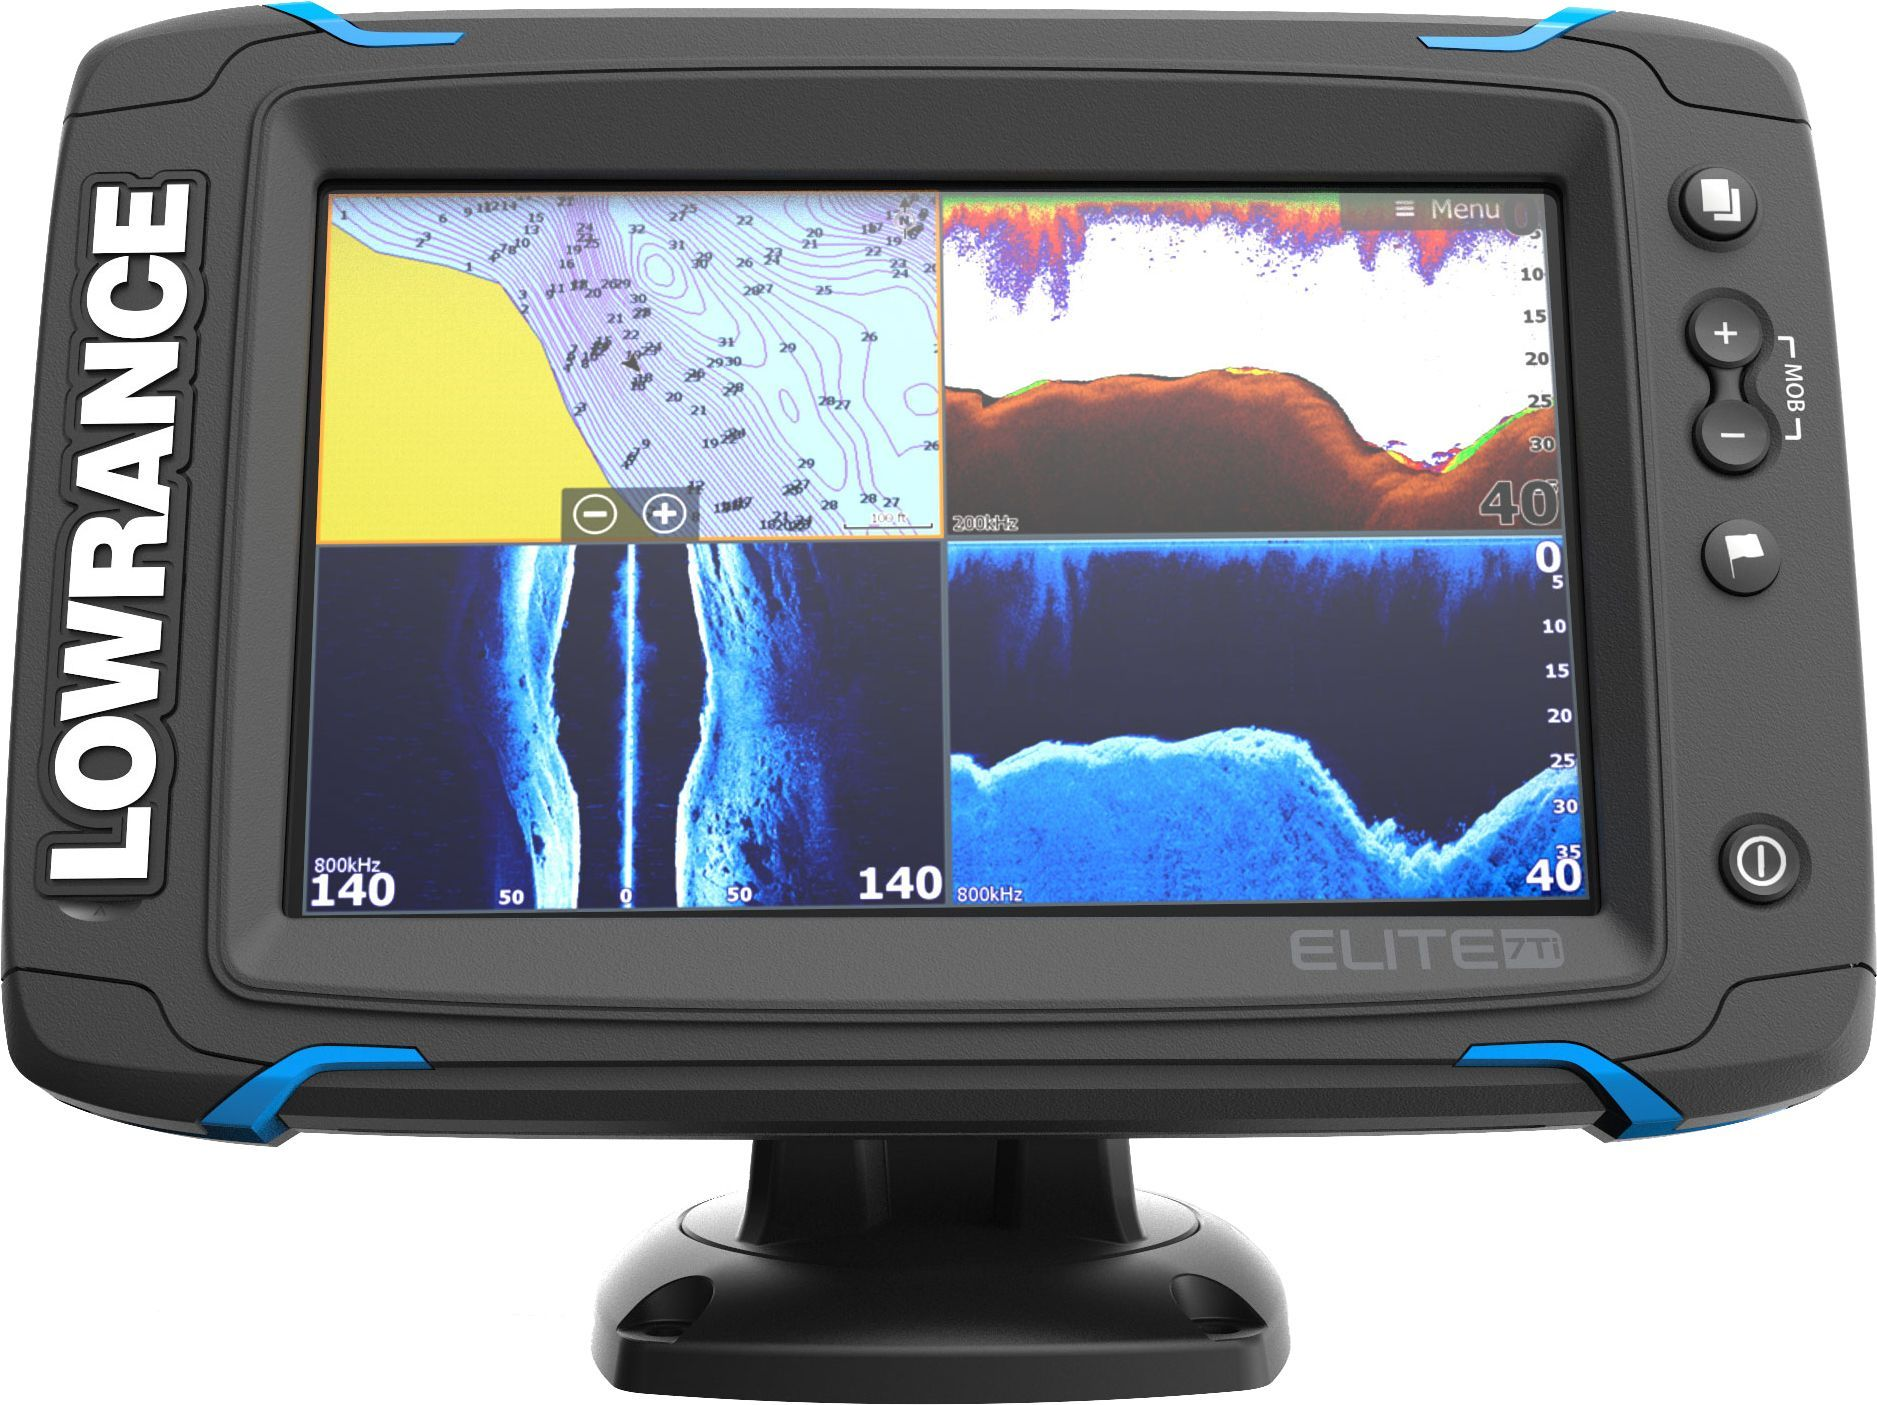 Lowrance Elite 7 Ti Gps Fish Finder With Mid High Totalscan 000 12419 001 Transducer Fish Finder Gps Units